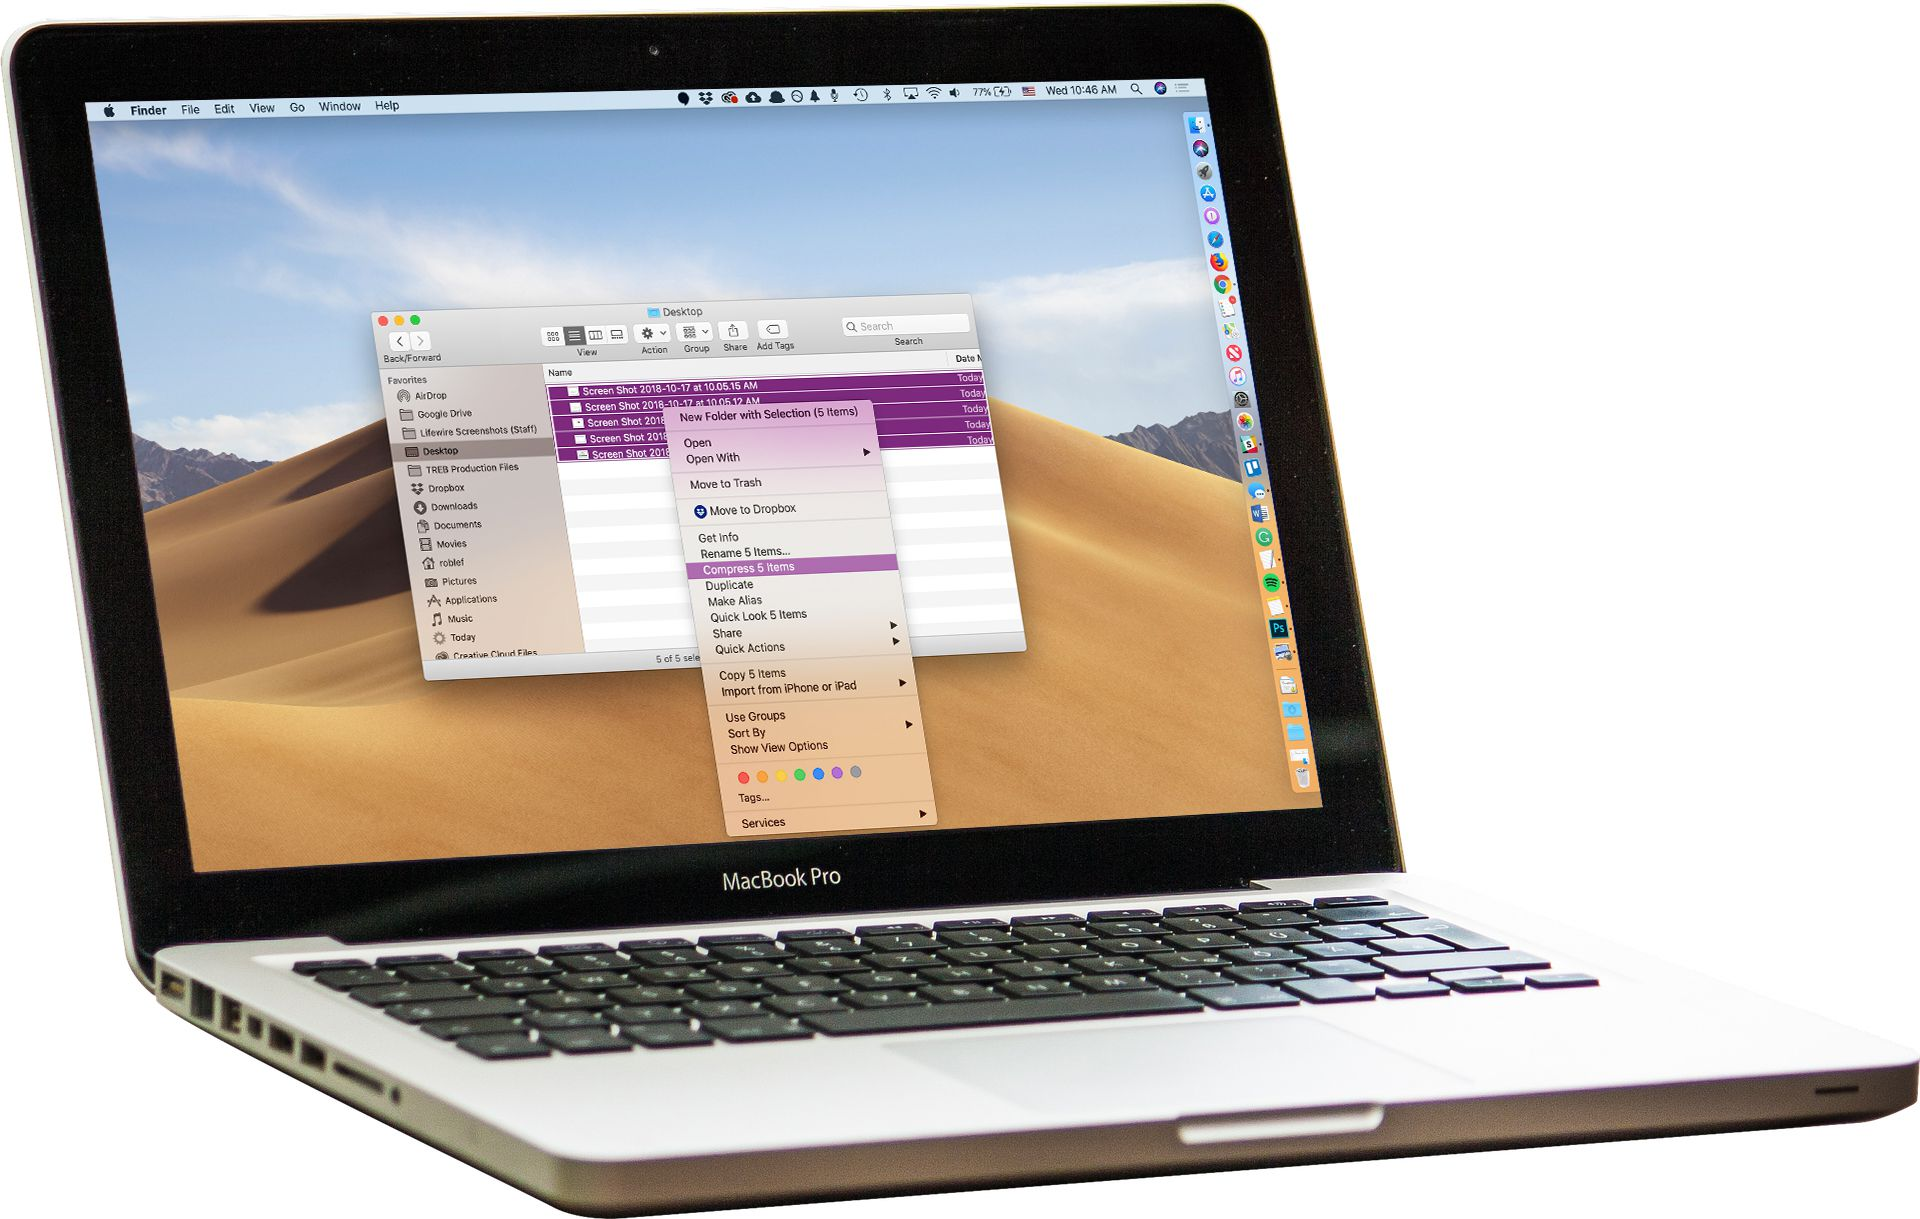 How to Zip and Unzip Files and Folders on a Mac